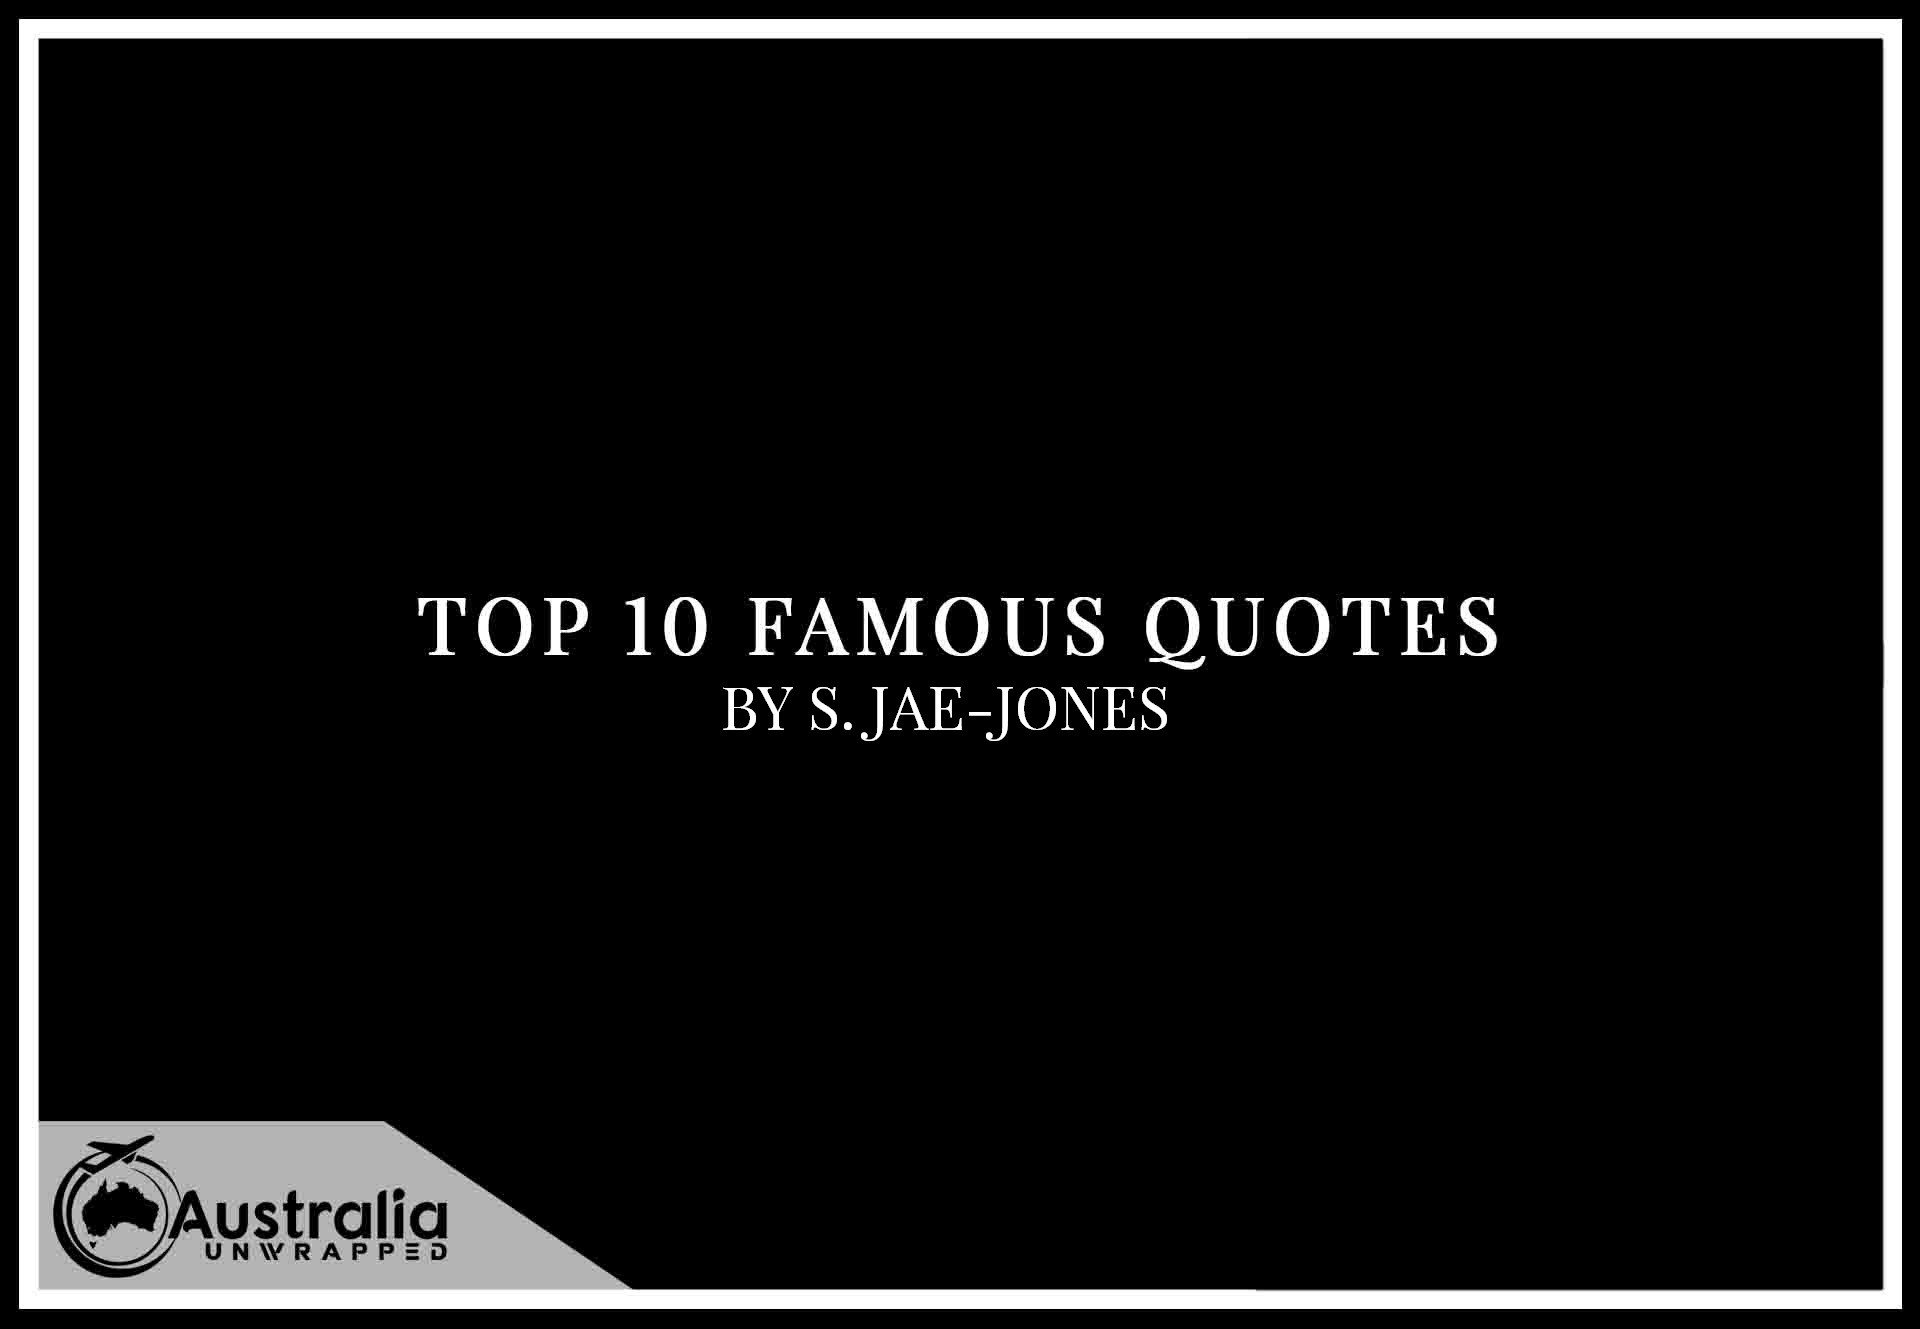 Top 10 Famous Quotes by Author S. Jae-Jones